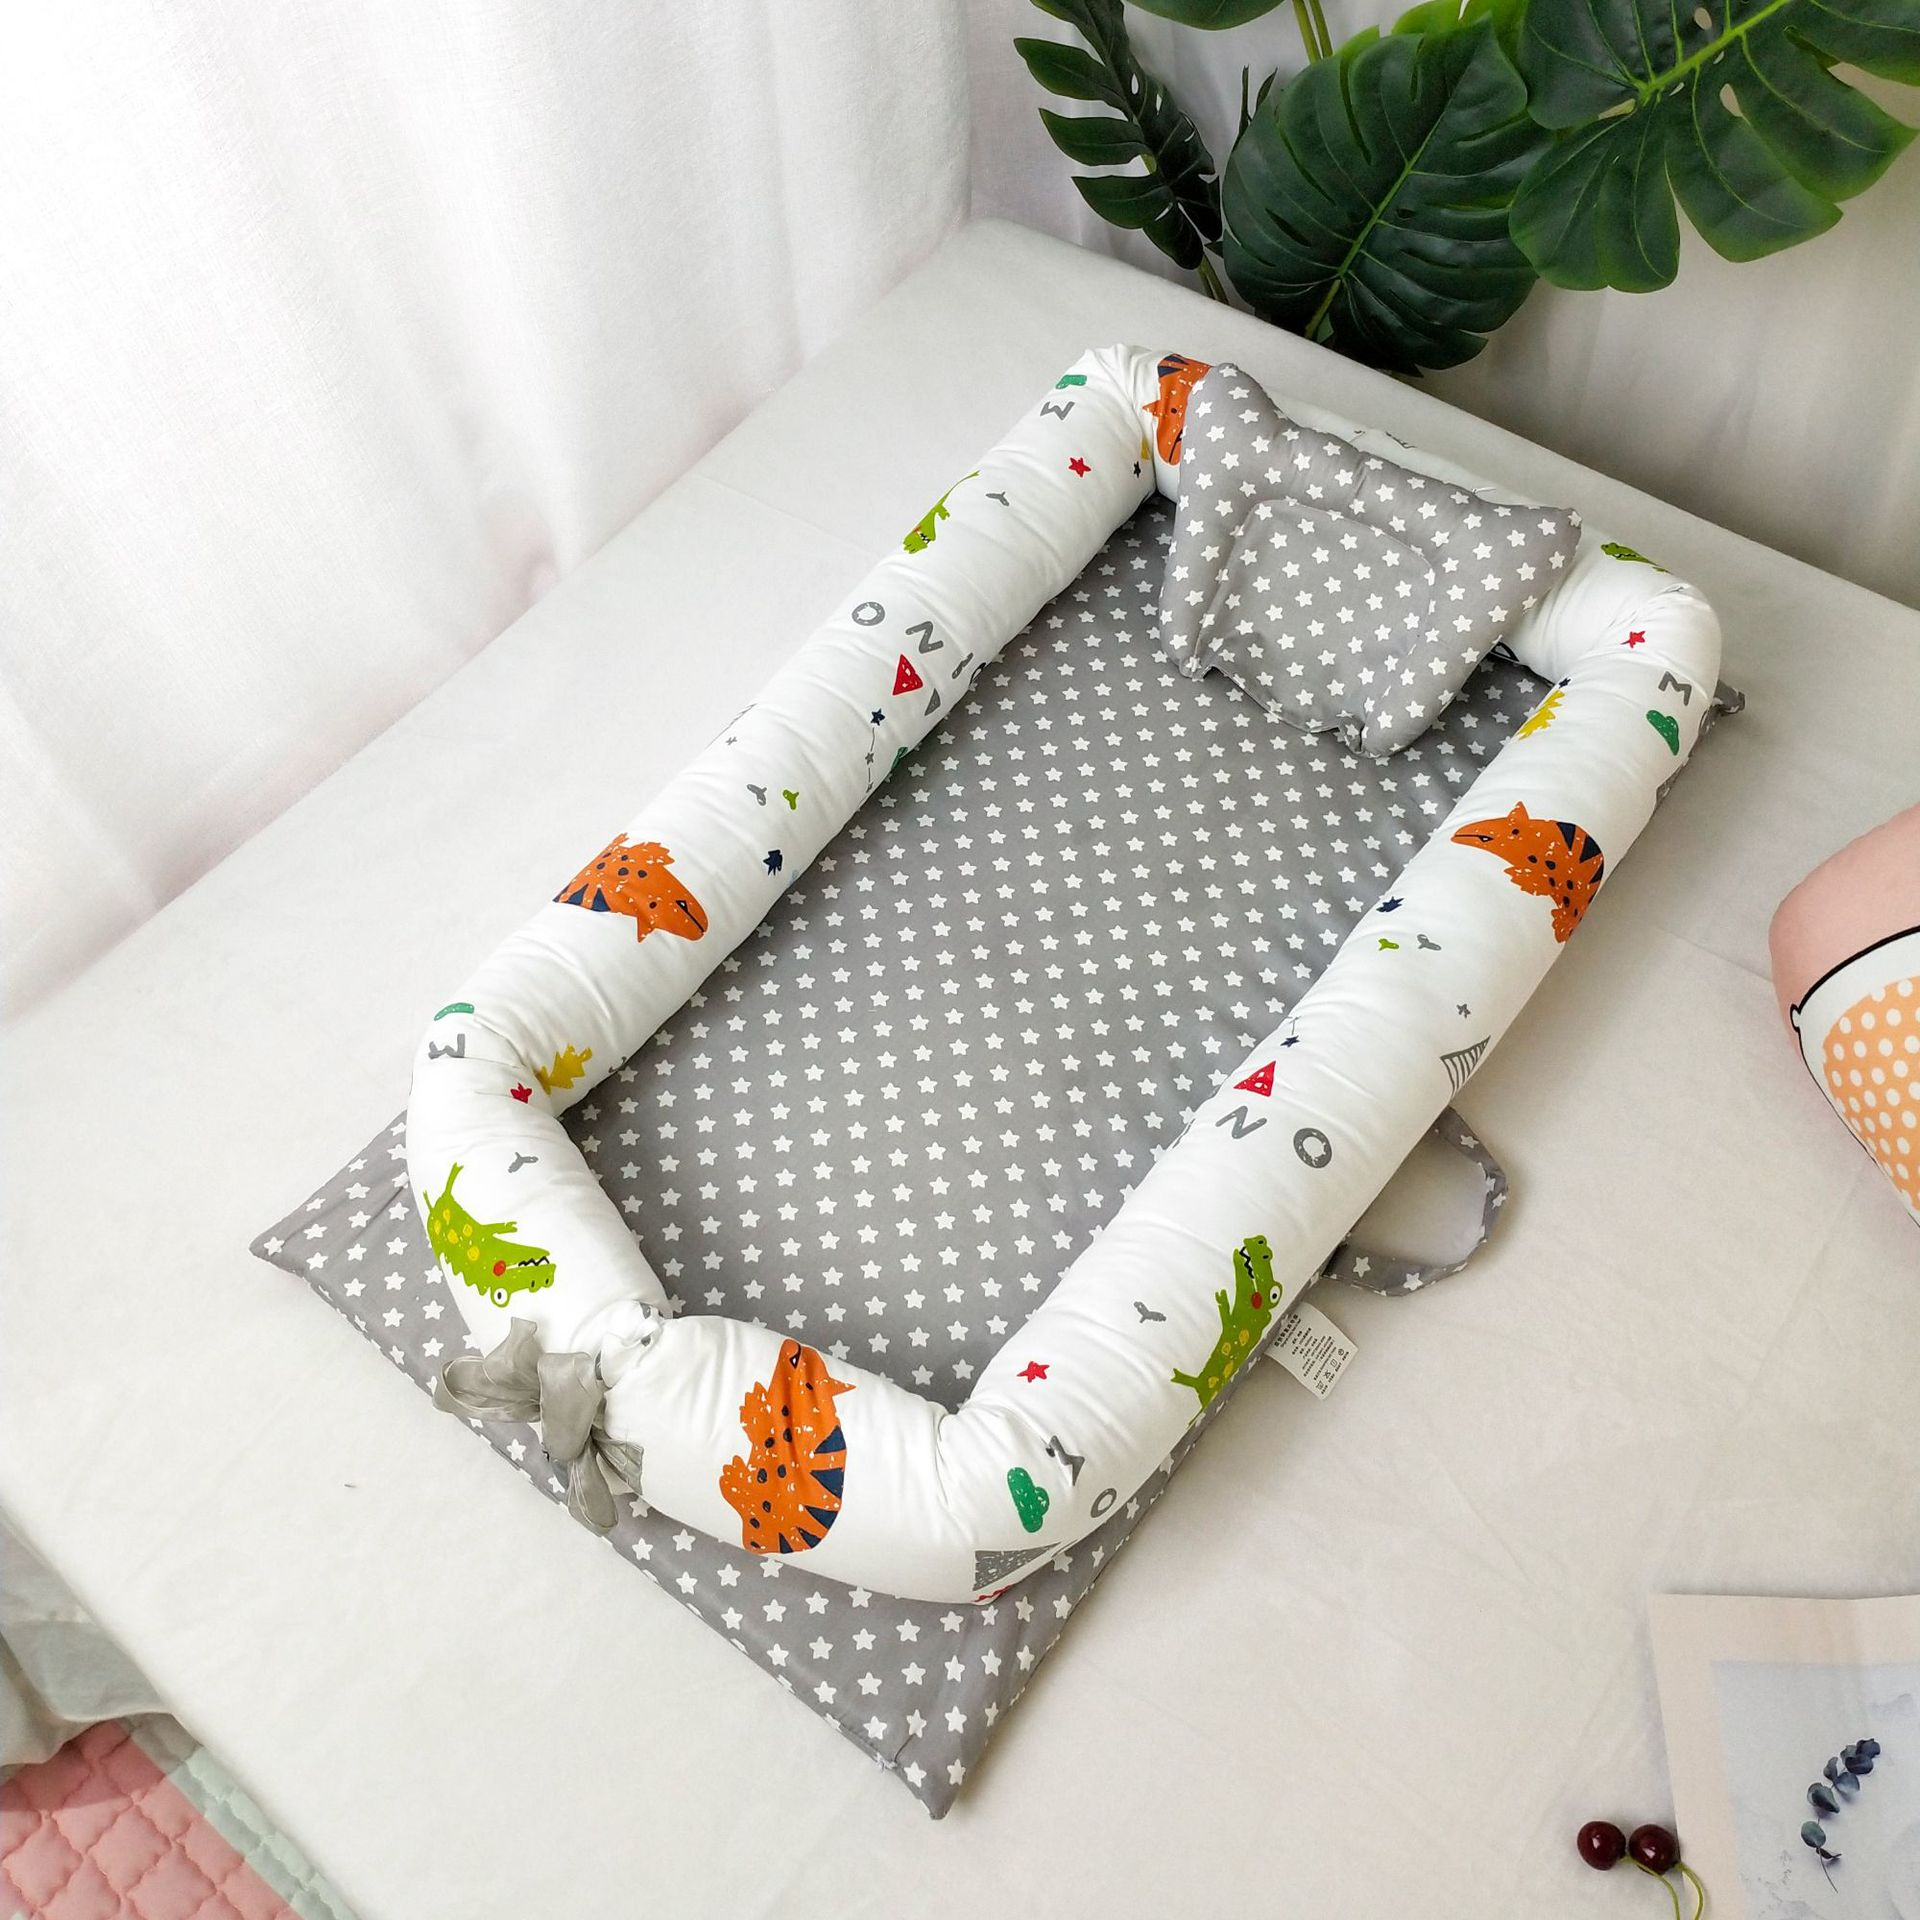 Portable Foldable Baby Cot Newborn Baby Bed For Traveling Without Quilt Cartoon Print Baby Carry Cot